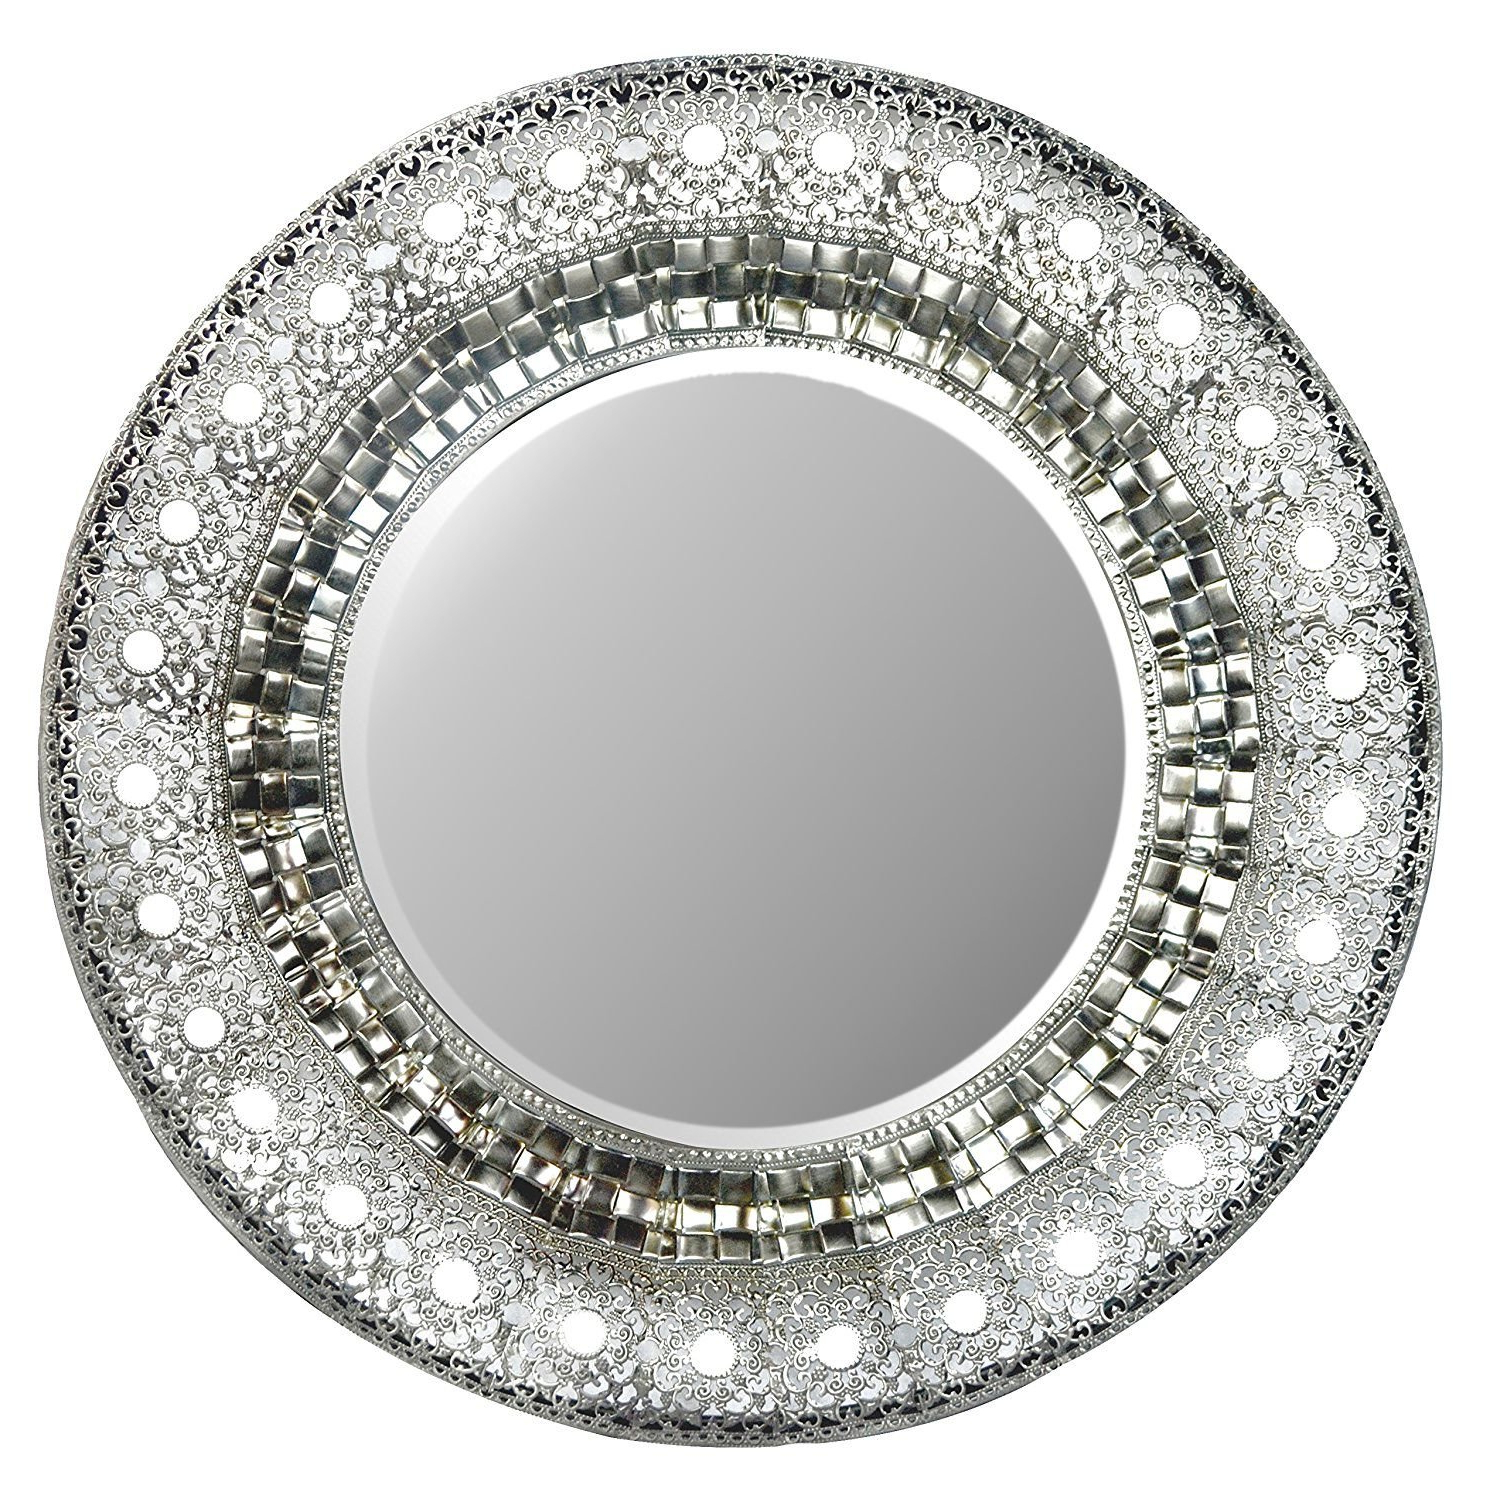 "Well Liked Lulu Decor, 19"" Oriental Round Silver Metal Beveled Wall Mirror, Decorative  Mirror For Home & Office (Oriental 19"") Pertaining To Silver Round Wall Mirrors (View 19 of 20)"